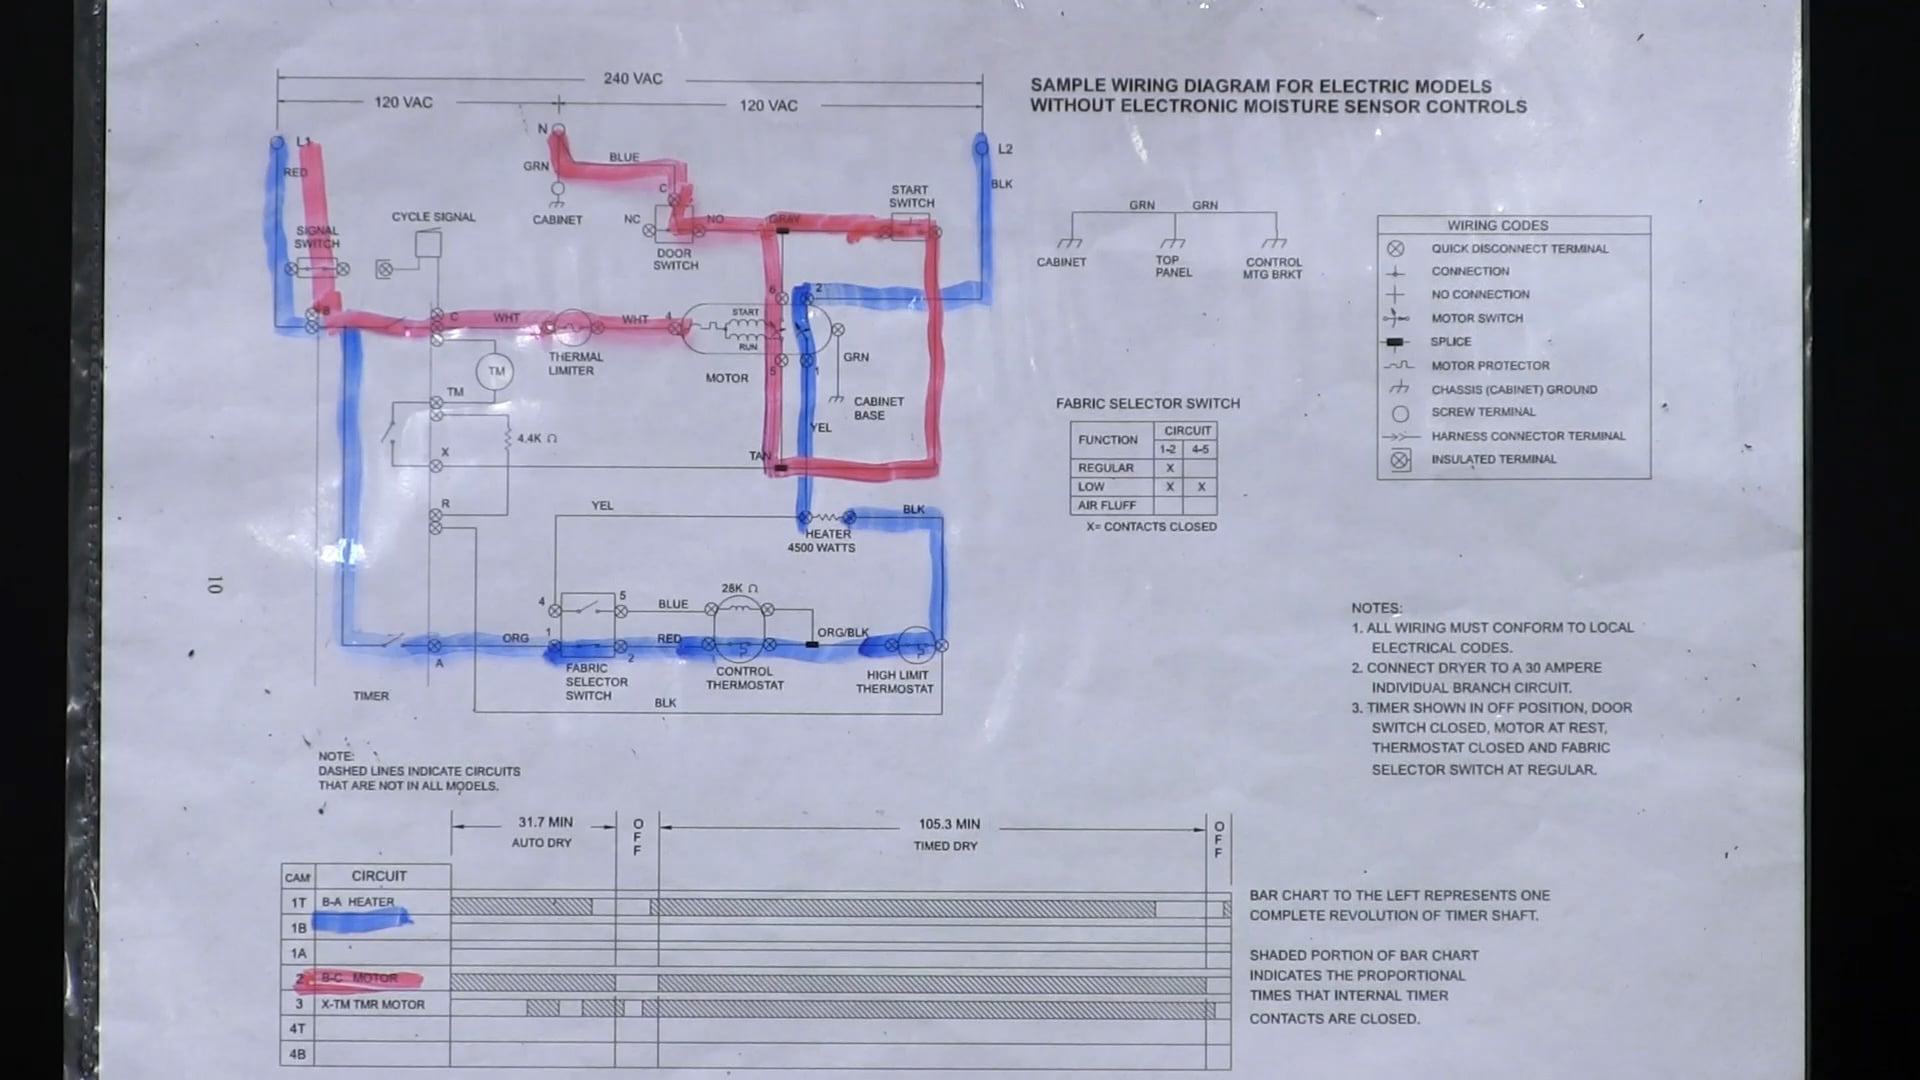 [DIAGRAM_38DE]  Wiring Schematic Diagnostics - Frigidaire Electric Dryer | Fred's Appliance  Academy | Wiring Diagram For Frigidaire Dishwasher |  | Fred's Appliance Academy